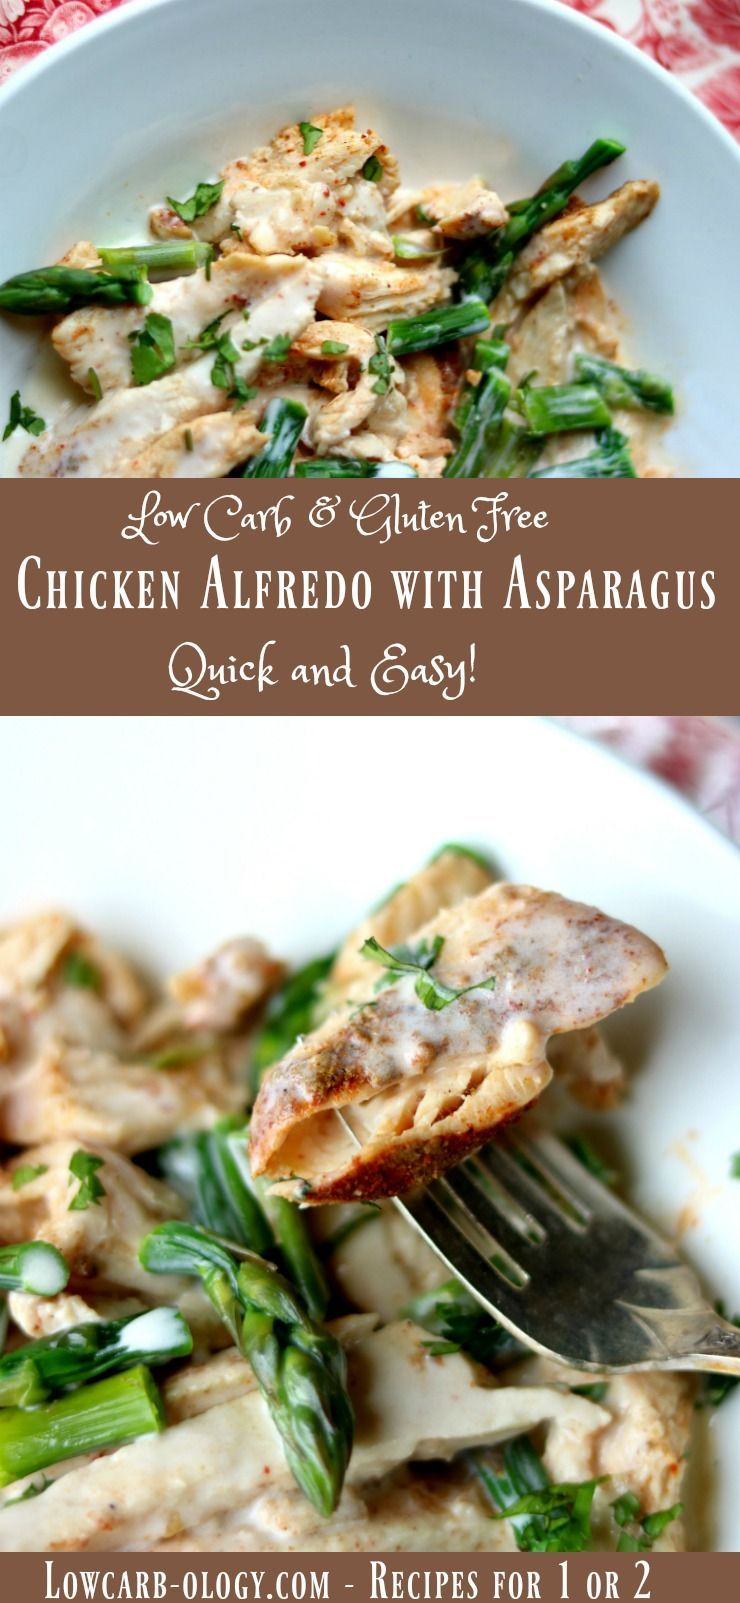 Quick and easy, low carb chicken Alfredo recipe is gluten free and has just 4.6 net carbs. Pure comfort food right here! Rich and